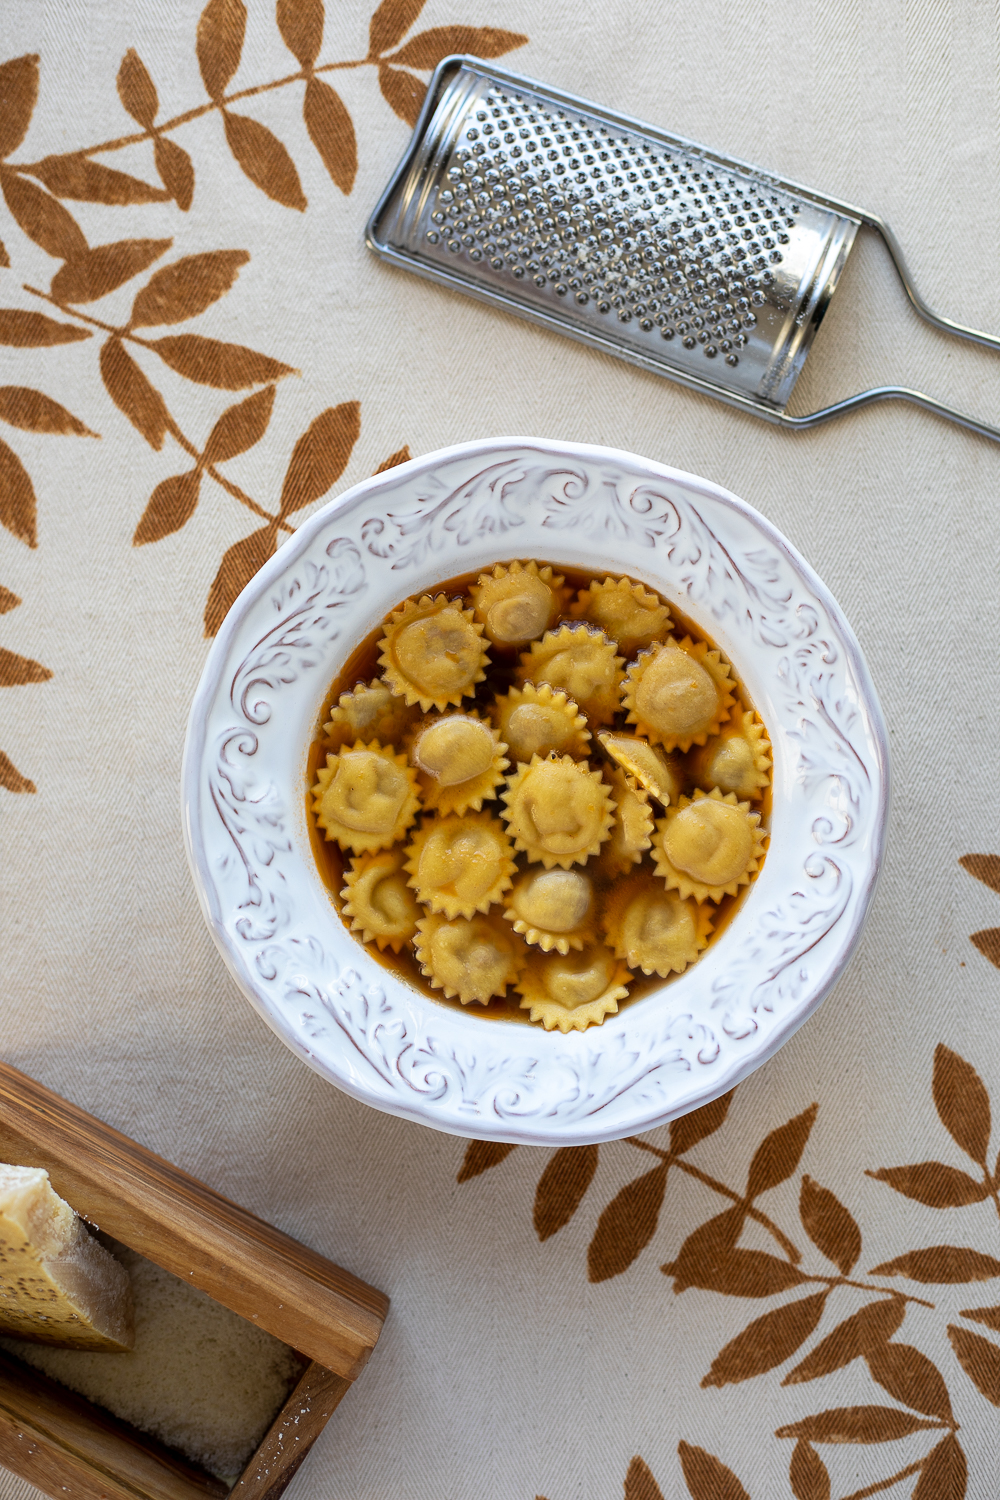 anolini in brodo with olive wood cheese grater and parmigiano - qbcucina.com